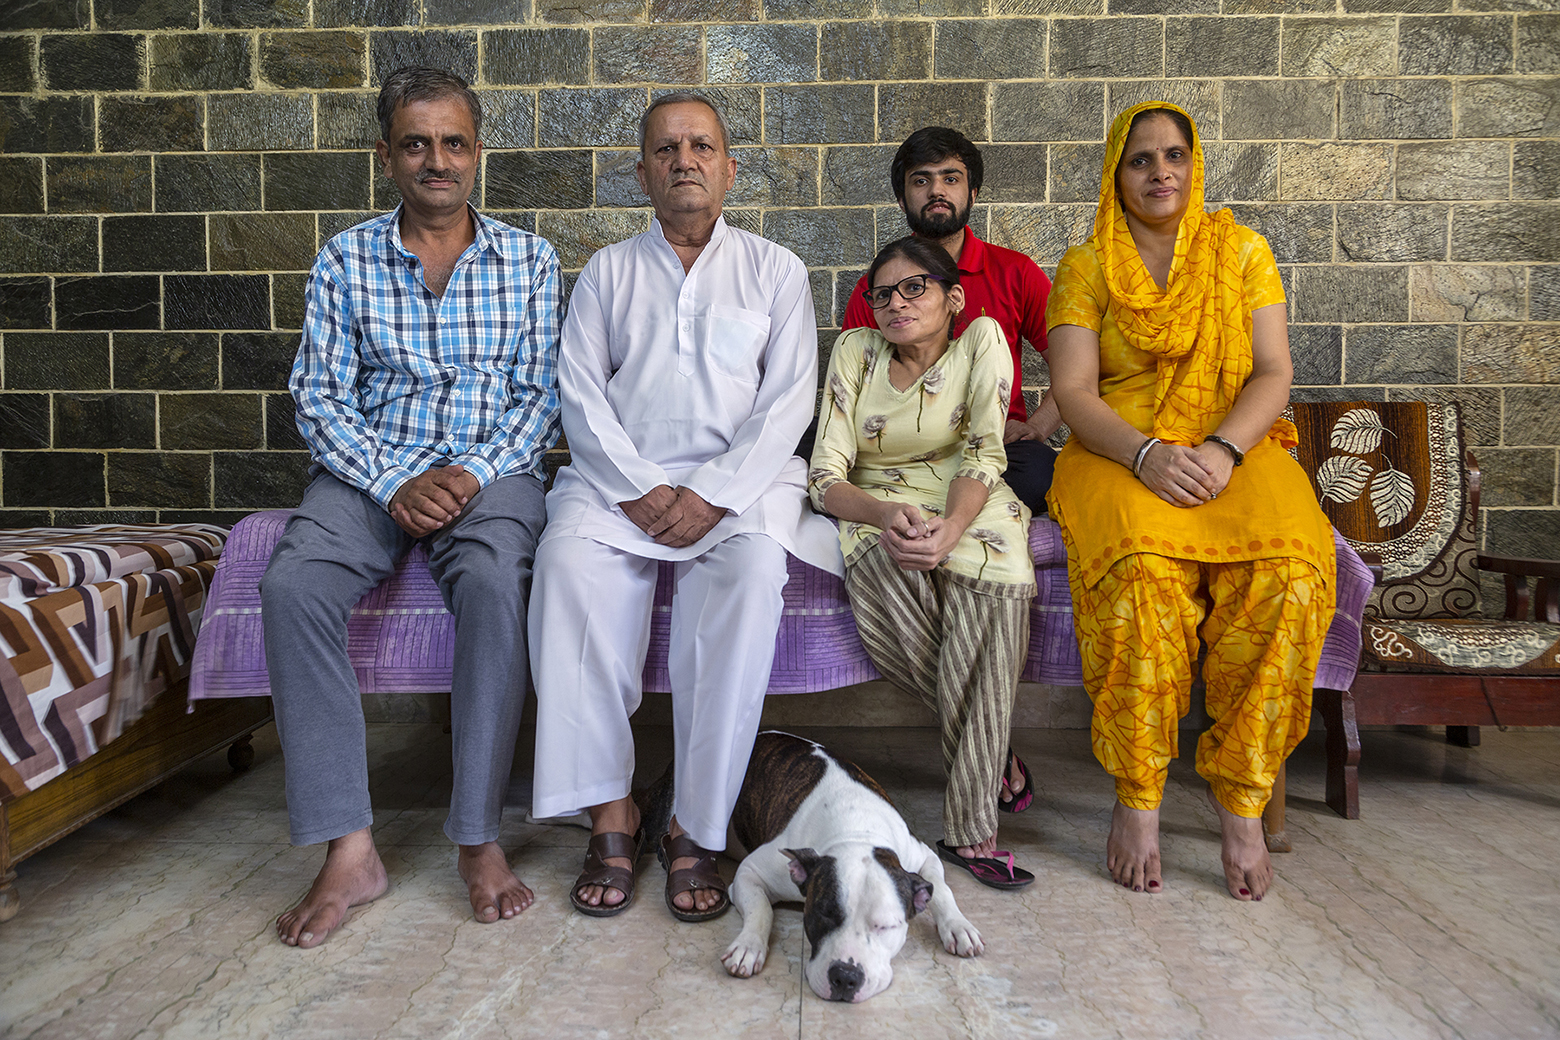 Kavita and her family sit in a row on a deewan. From left to right: elder brother Davender Singh (51), father Pratap Singh (72), Kavita, and sister-in-law Sunitha (46). Behind Kavita is her nephew Abhishek Mathur (22). Dollar is lying near Kavita's feet, front paws spread out, head resting on the ground. Davender wears grey pants and full-sleeve shirt with blue, black and white checks. Pratap wears white kurta-pyjama. Kavita wears a cream kameez and a salwar with brown and cream stripes. Sunitha is in a bright yellow salwar-kameez and her matching dupatta is draped over her head. Abhishek, who has a beard and moustache, wears a red T-shirt.